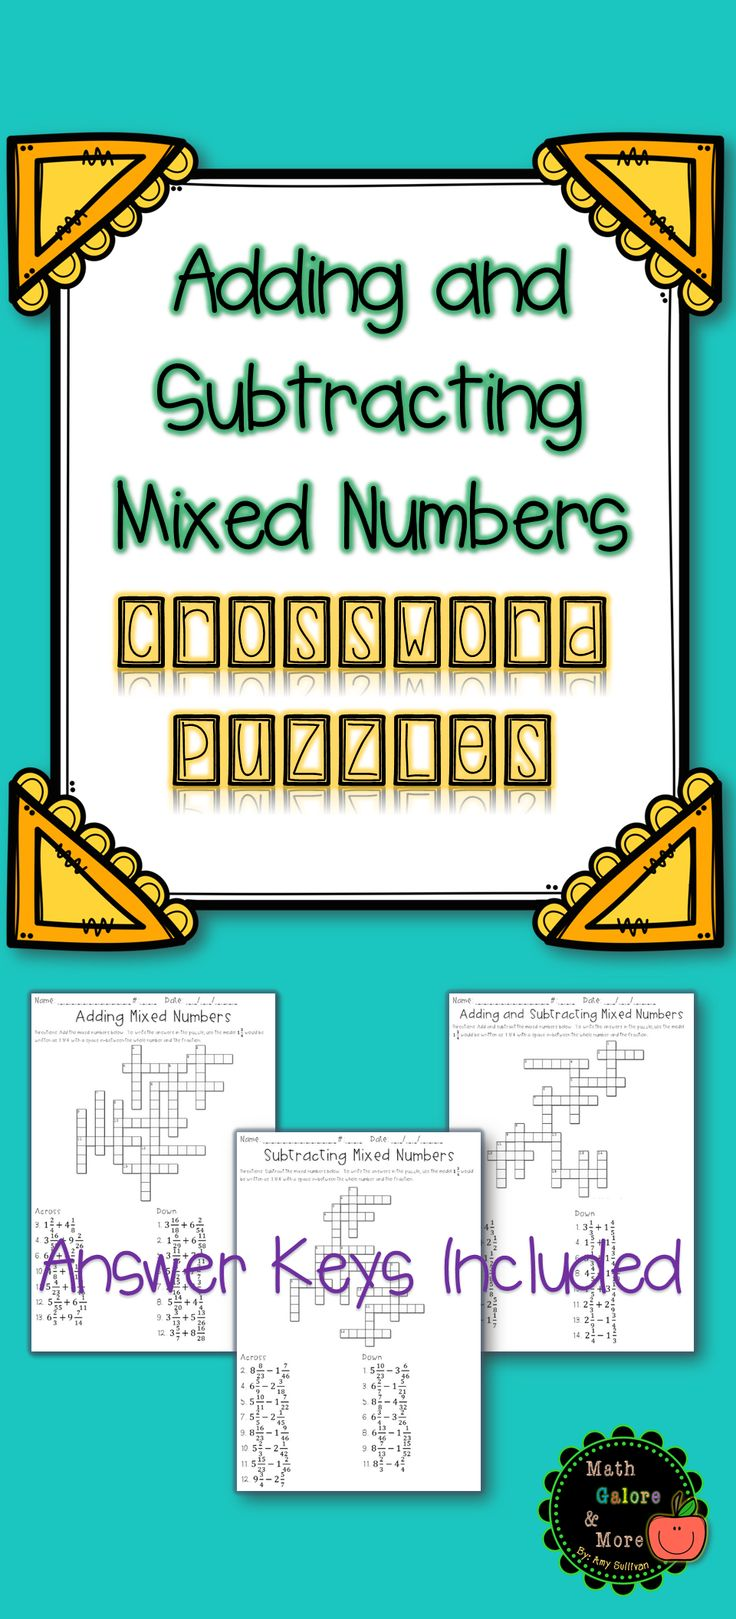 Adding And Subtracting Mixed Numbers Crossword Puzzle Activity Subtract Mixed Numbers Subtraction Adding And Subtracting More adding and subtracting mixed